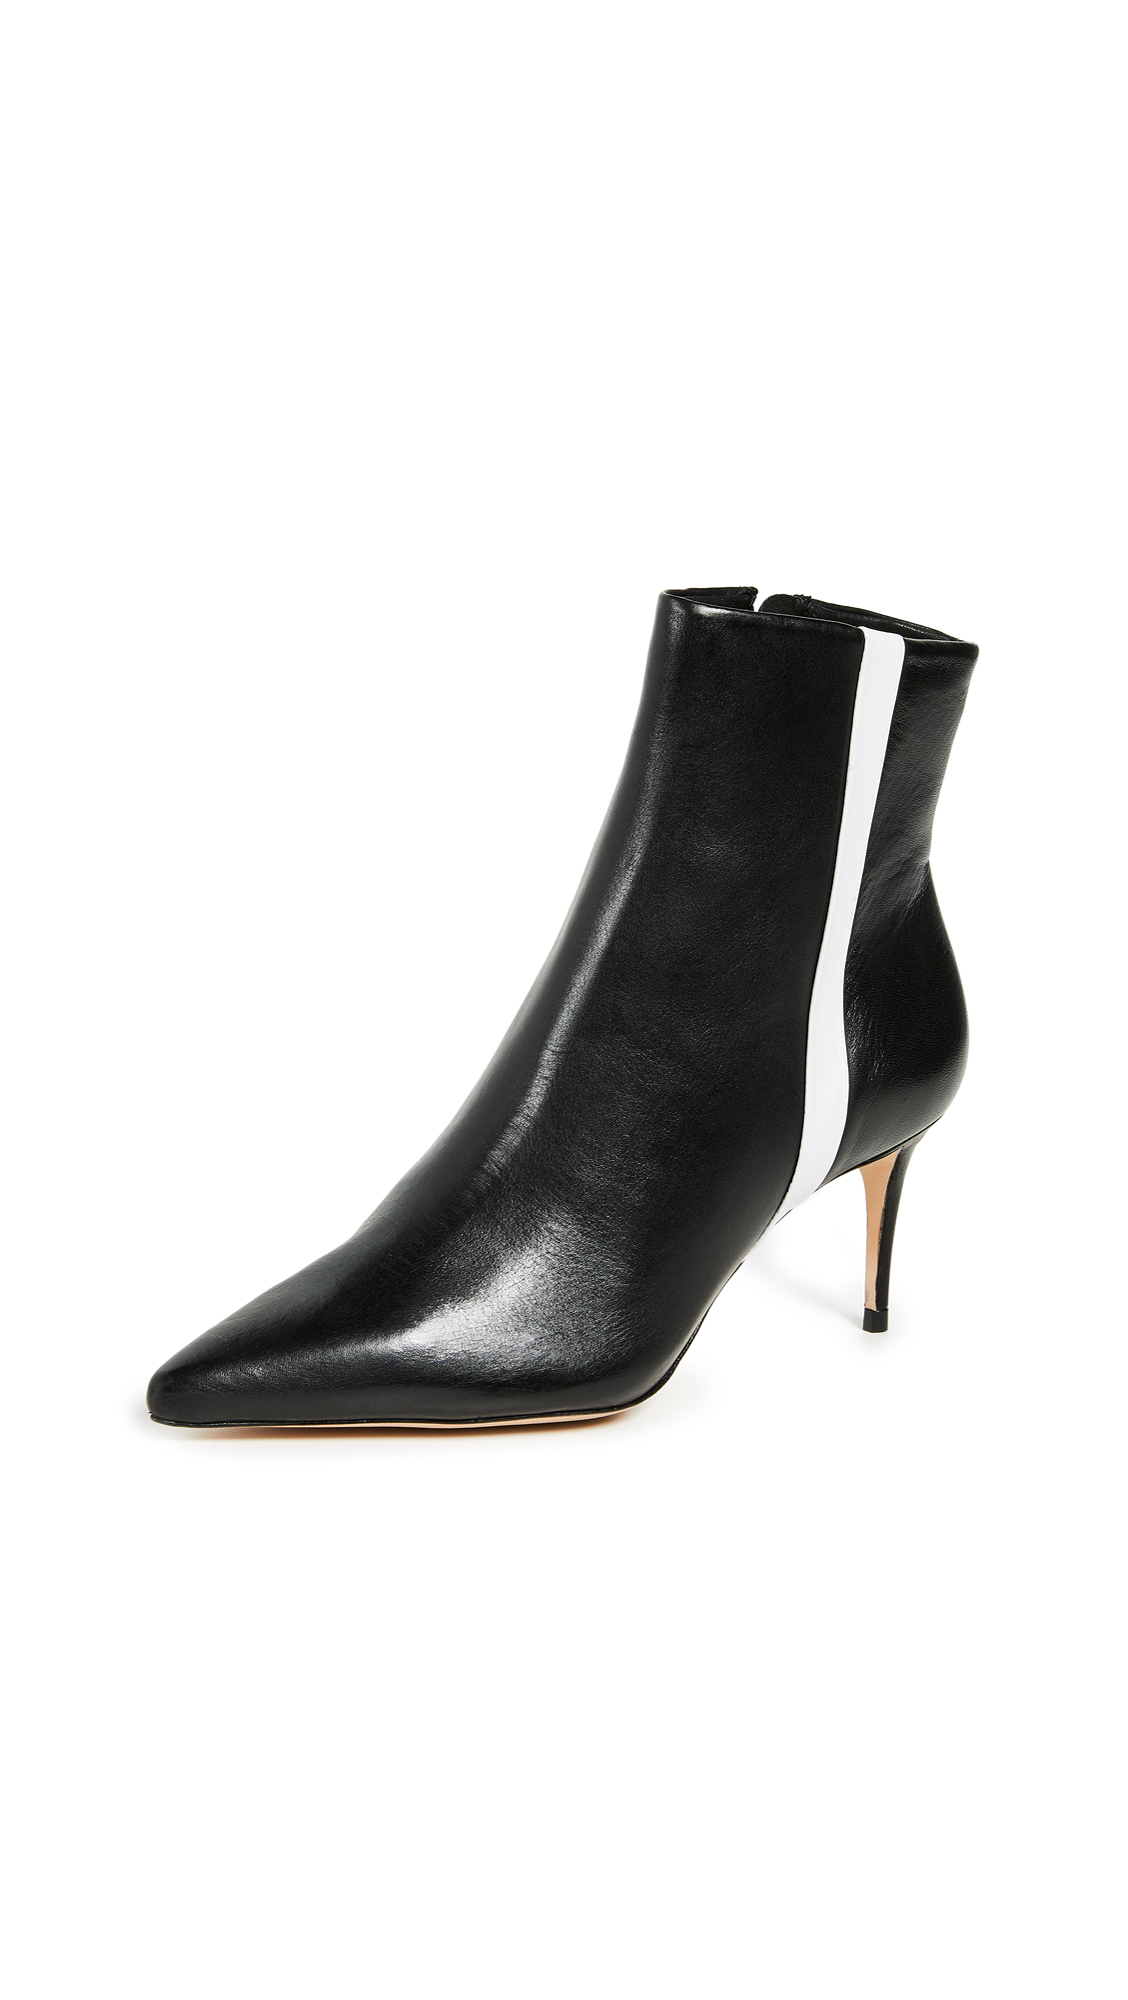 Schutz Adrien Stripe Booties - Black/White